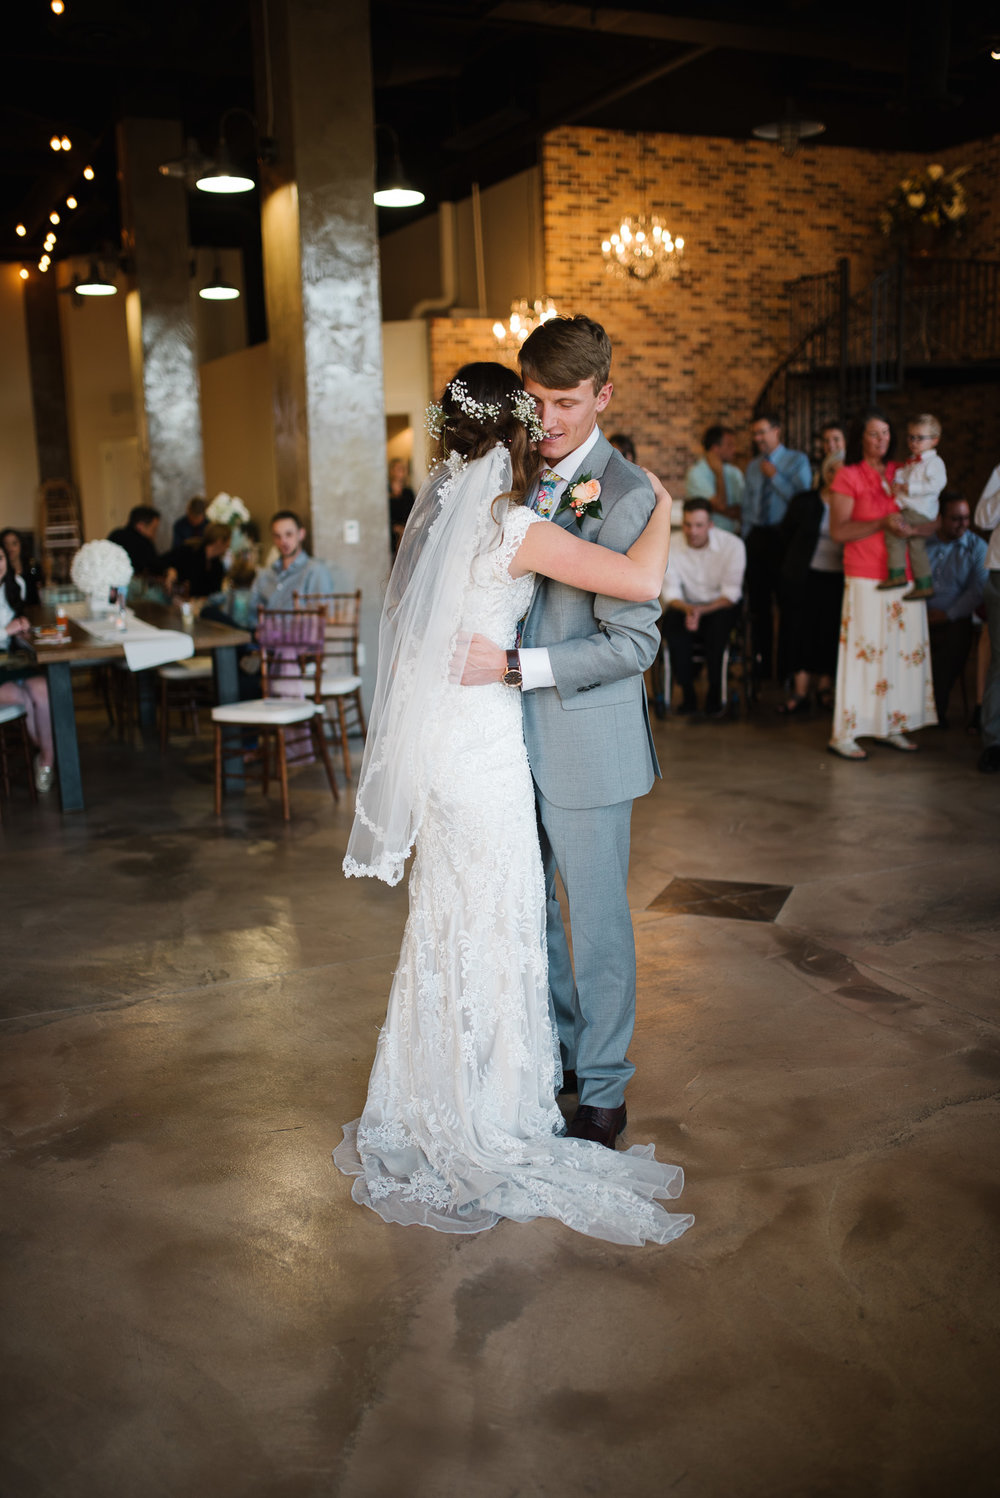 CarriGeorgeWedding_JTP2017_093.jpg